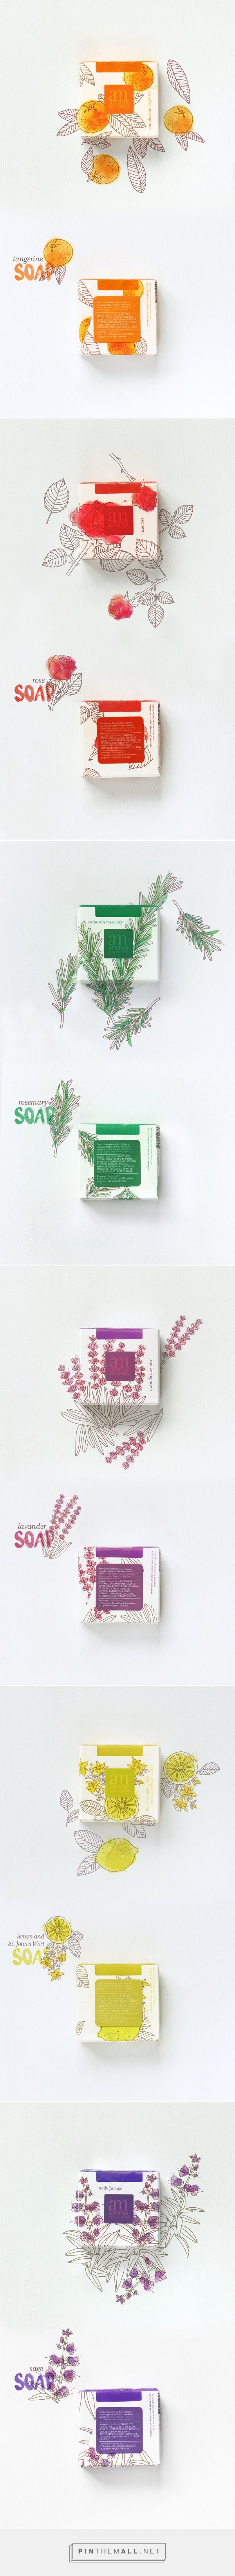 Aroma Mediterranea soaps — The Dieline - Branding & Packaging PD